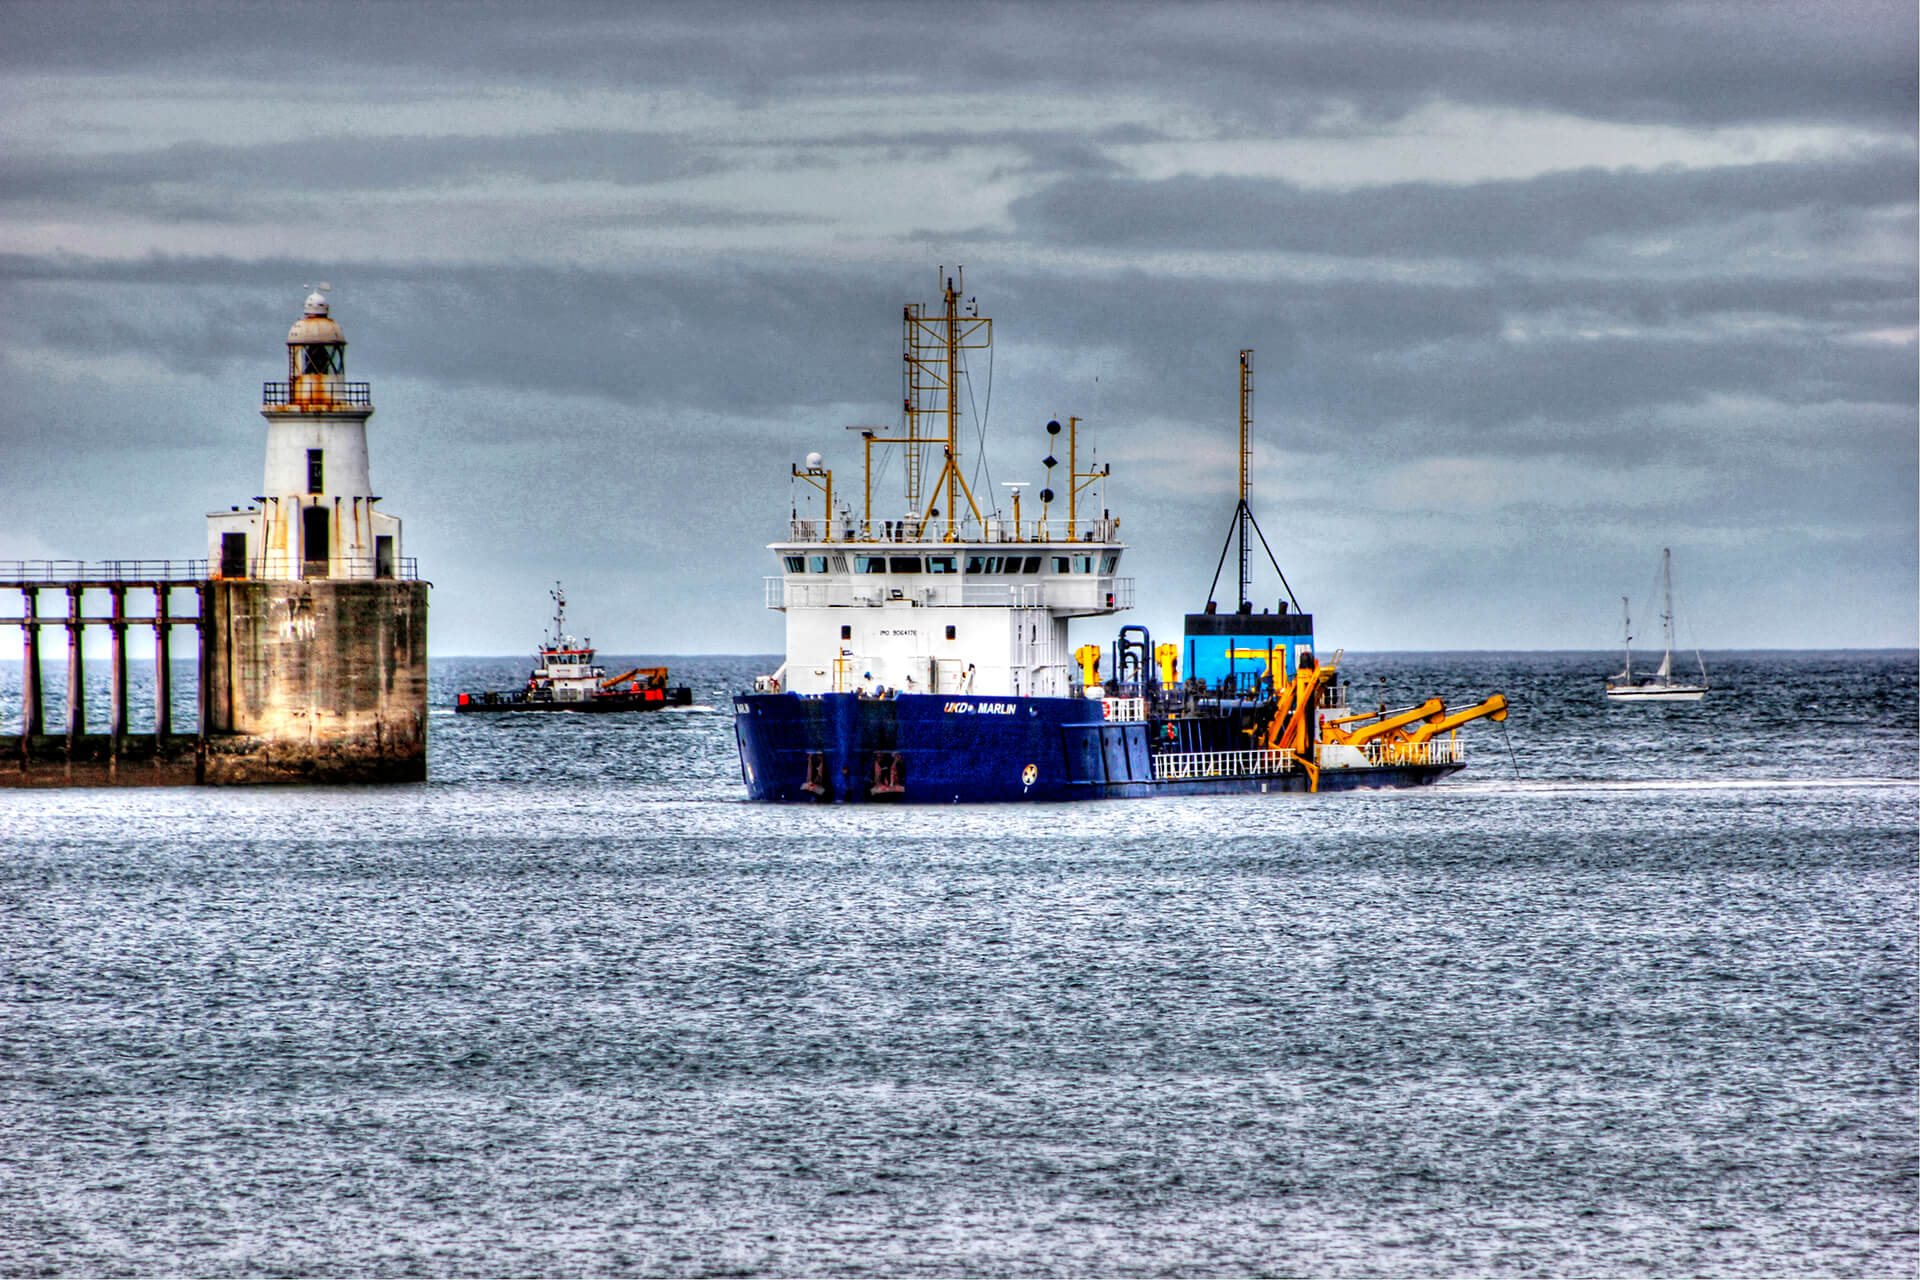 Blue hulled boat dredging near the lighthouse at the Port of Blyth, Northumberland